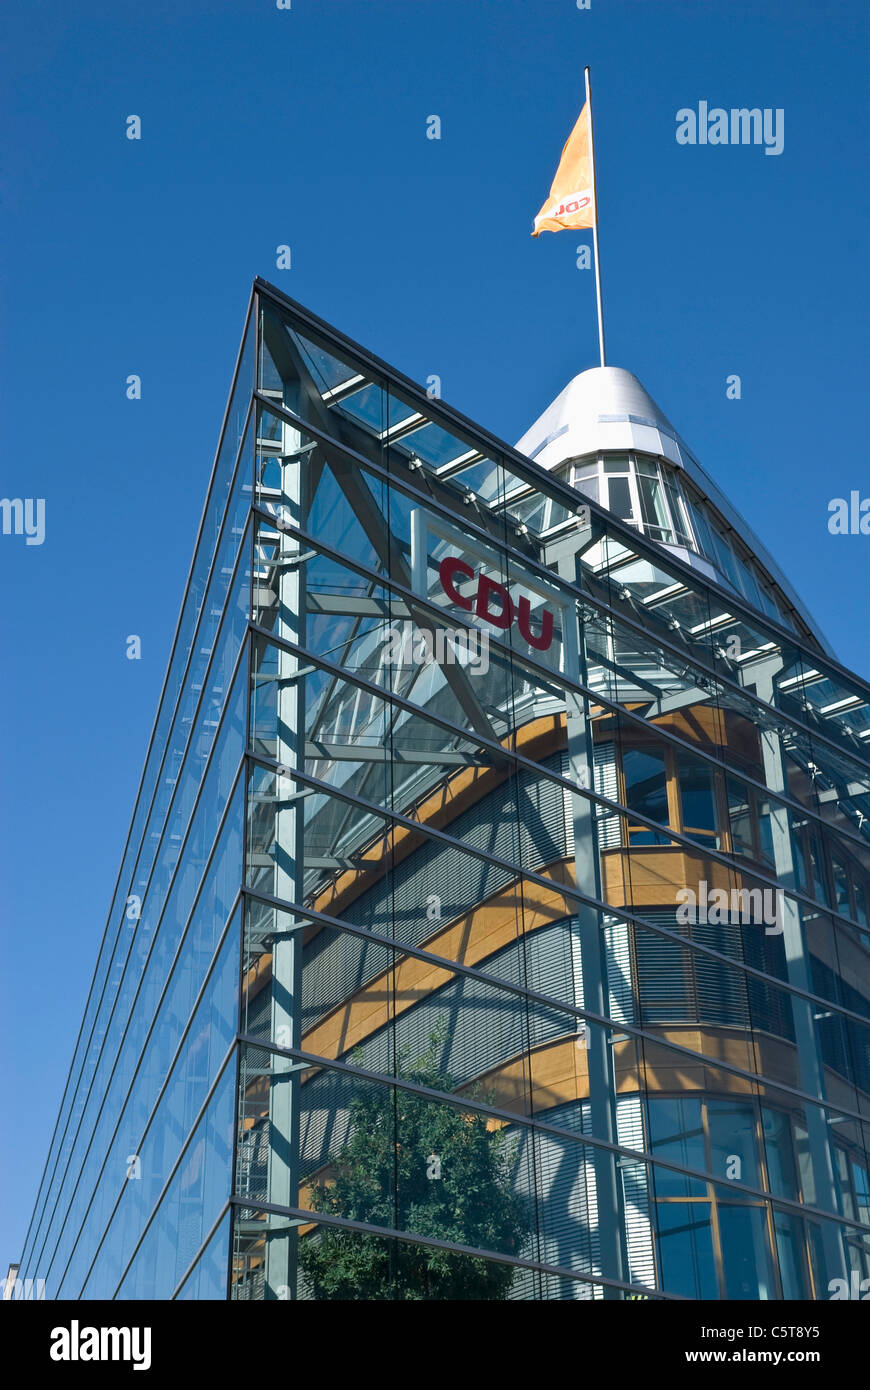 Germany, Berlin, CDU, Party headquarters building, low angle view - Stock Image